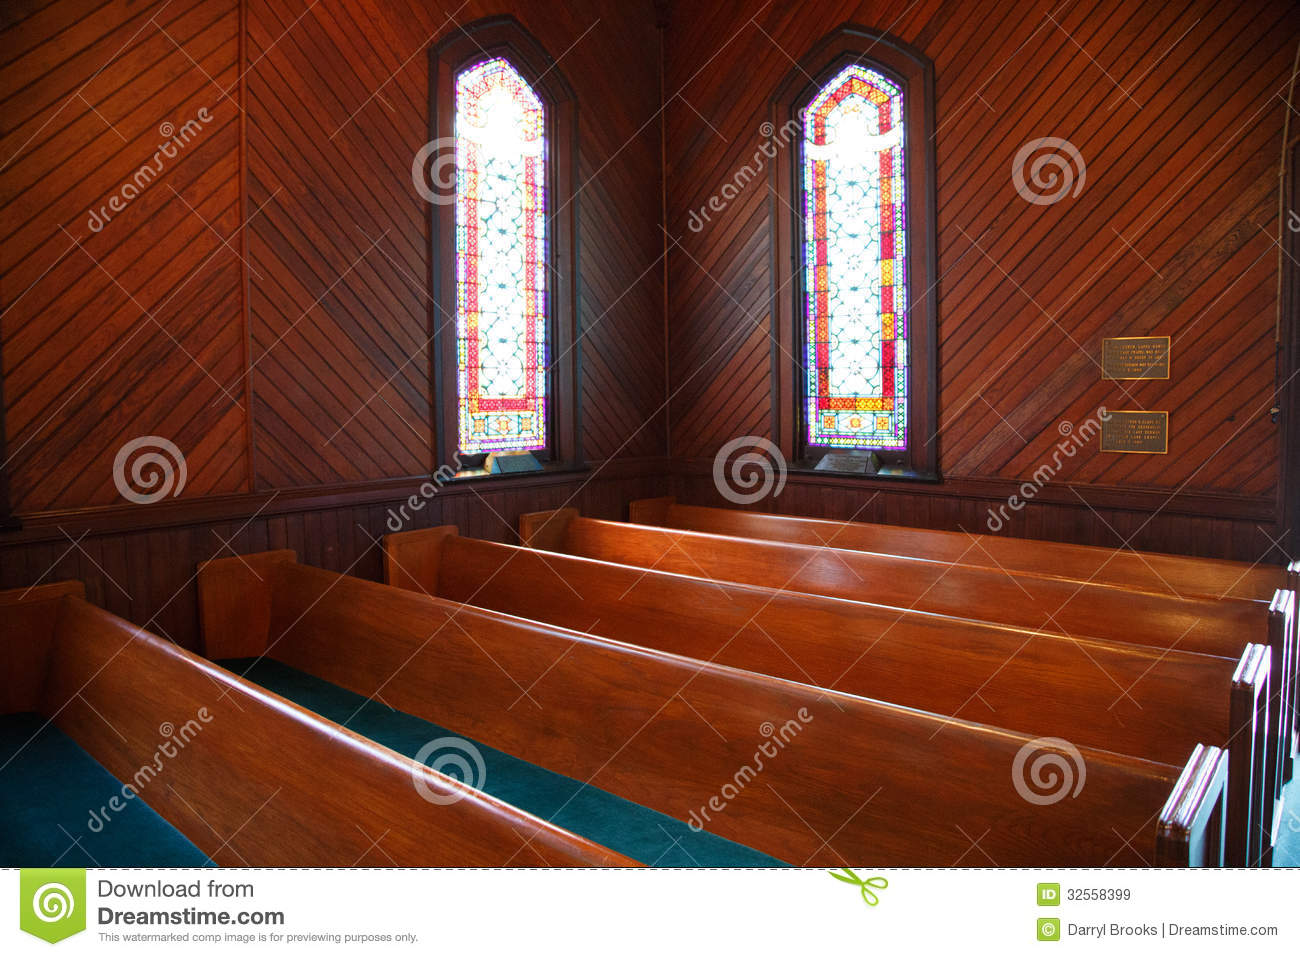 Pews And Stained Glass In Church Royalty Free Stock Images